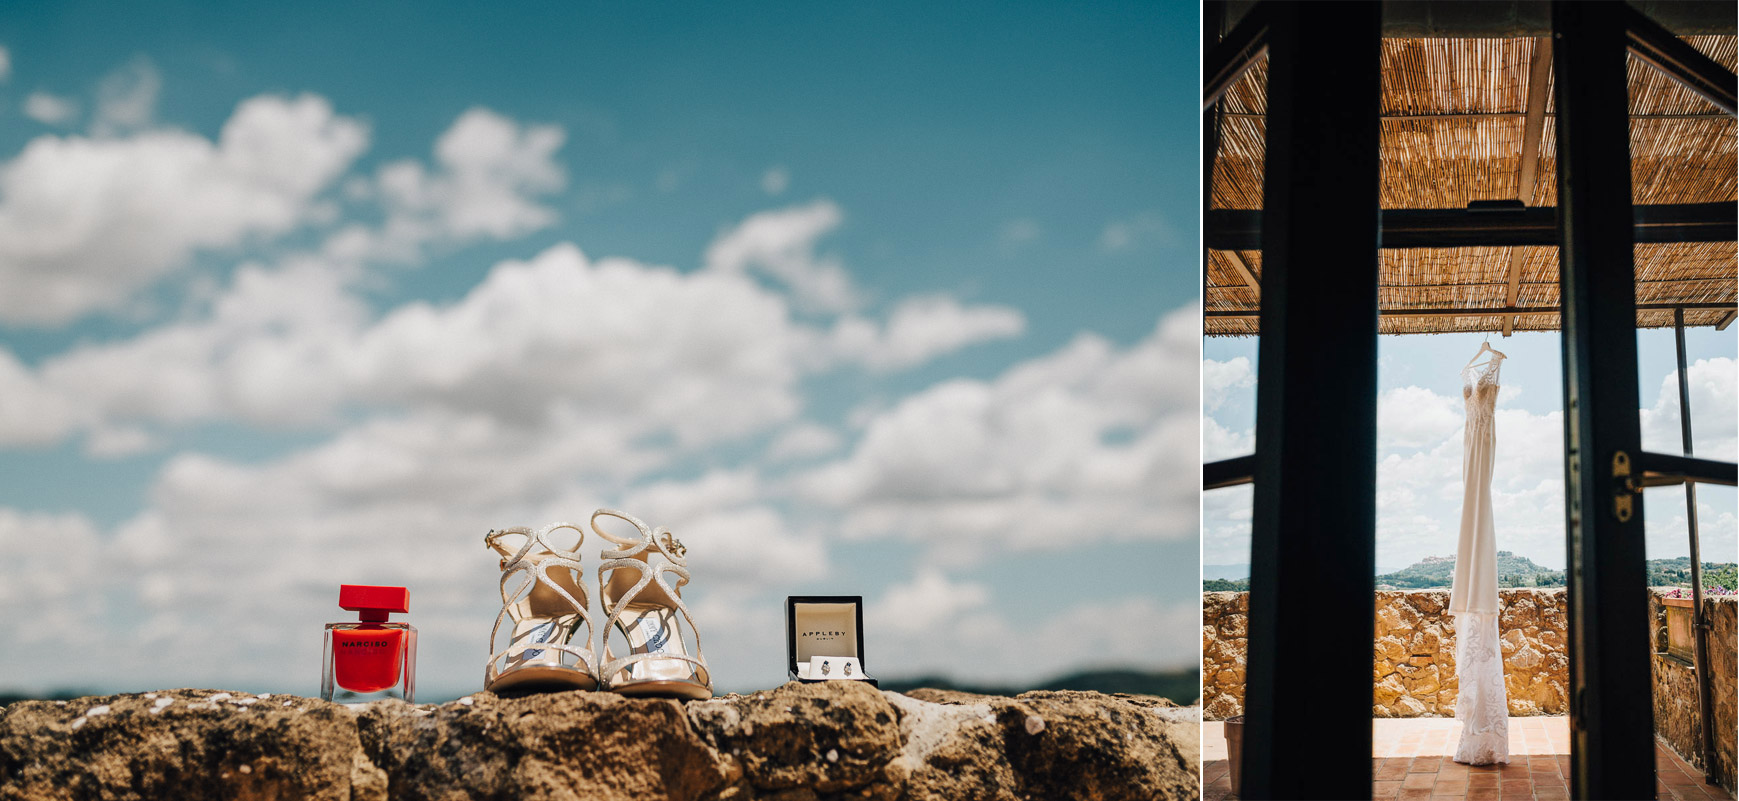 pienza-tuscany-wedding-photographer-44.jpg